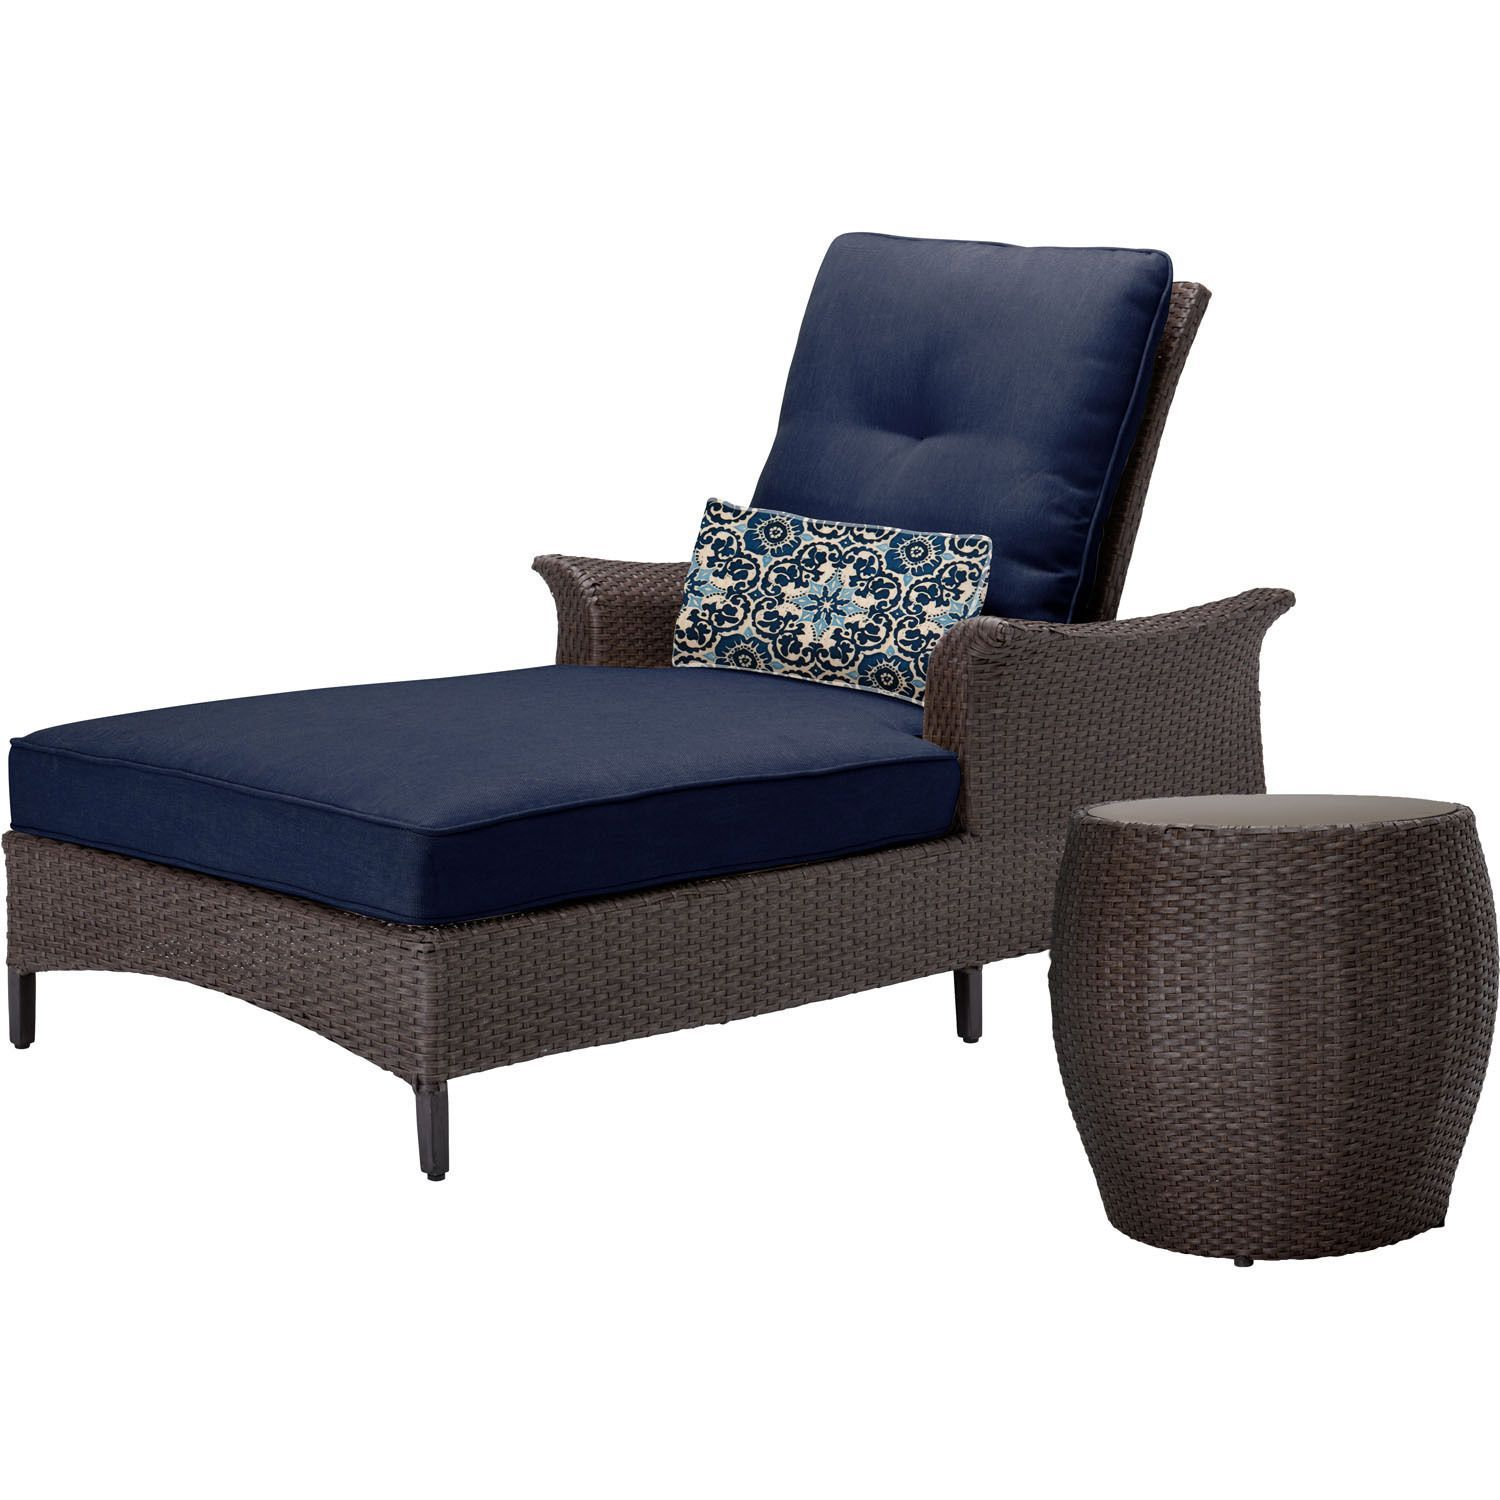 Hanover Outdoor GRAMERCY2PC-NVY Gramercy Two-piece Navy Blue Chaise Lounge Set (Navy) Patio Furniture (Steel)  sc 1 st  Pinterest : navy blue chaise lounge - Sectionals, Sofas & Couches